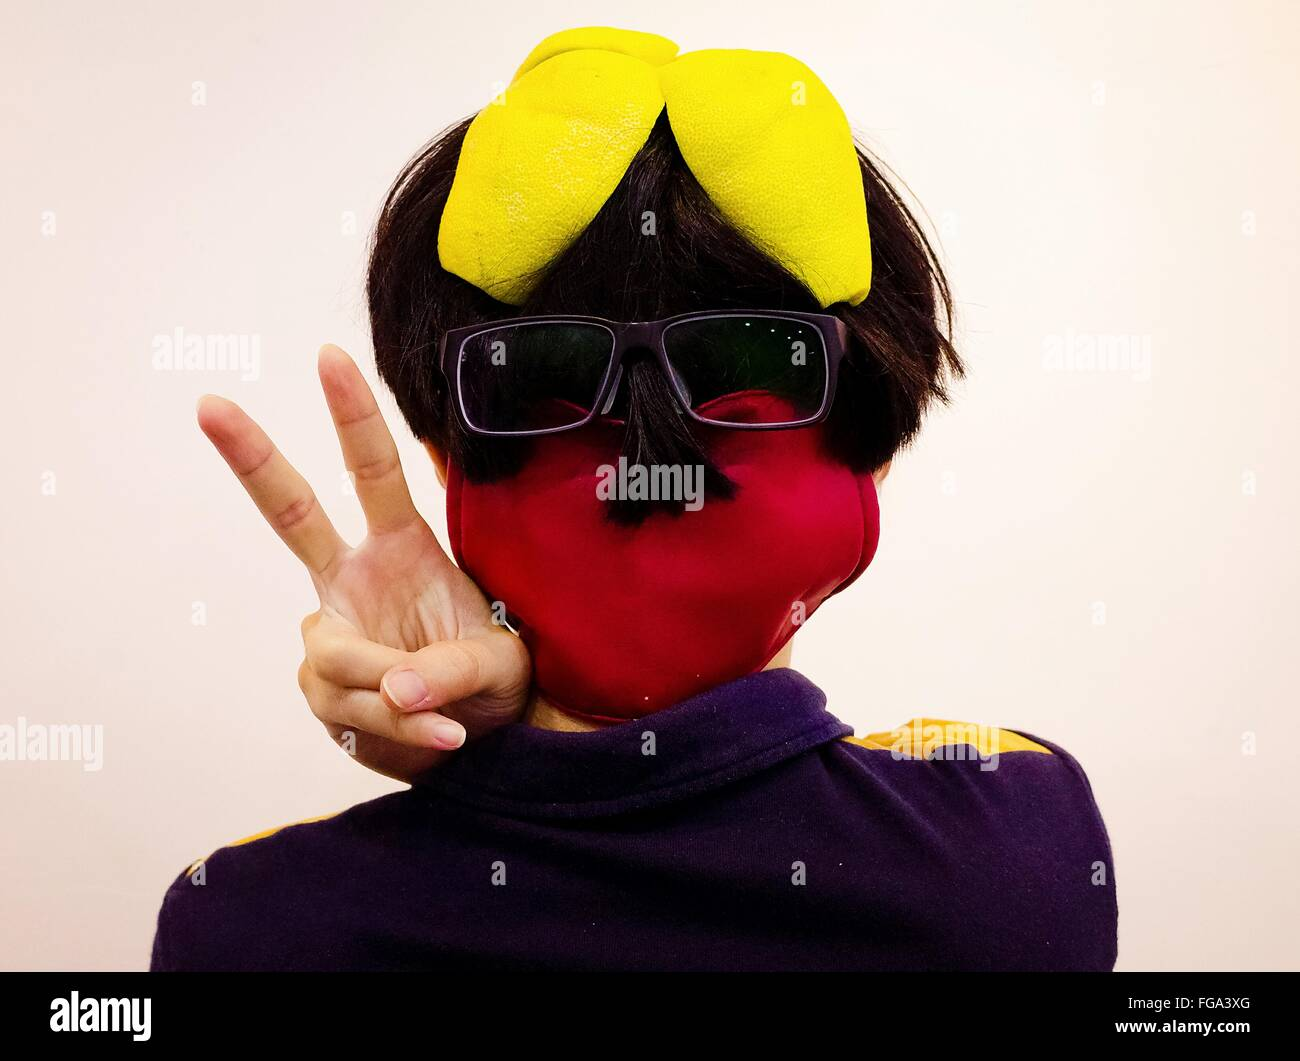 Rear View Of Person With Eyeglasses And Mask Showing Peace Sign Against White Background - Stock Image